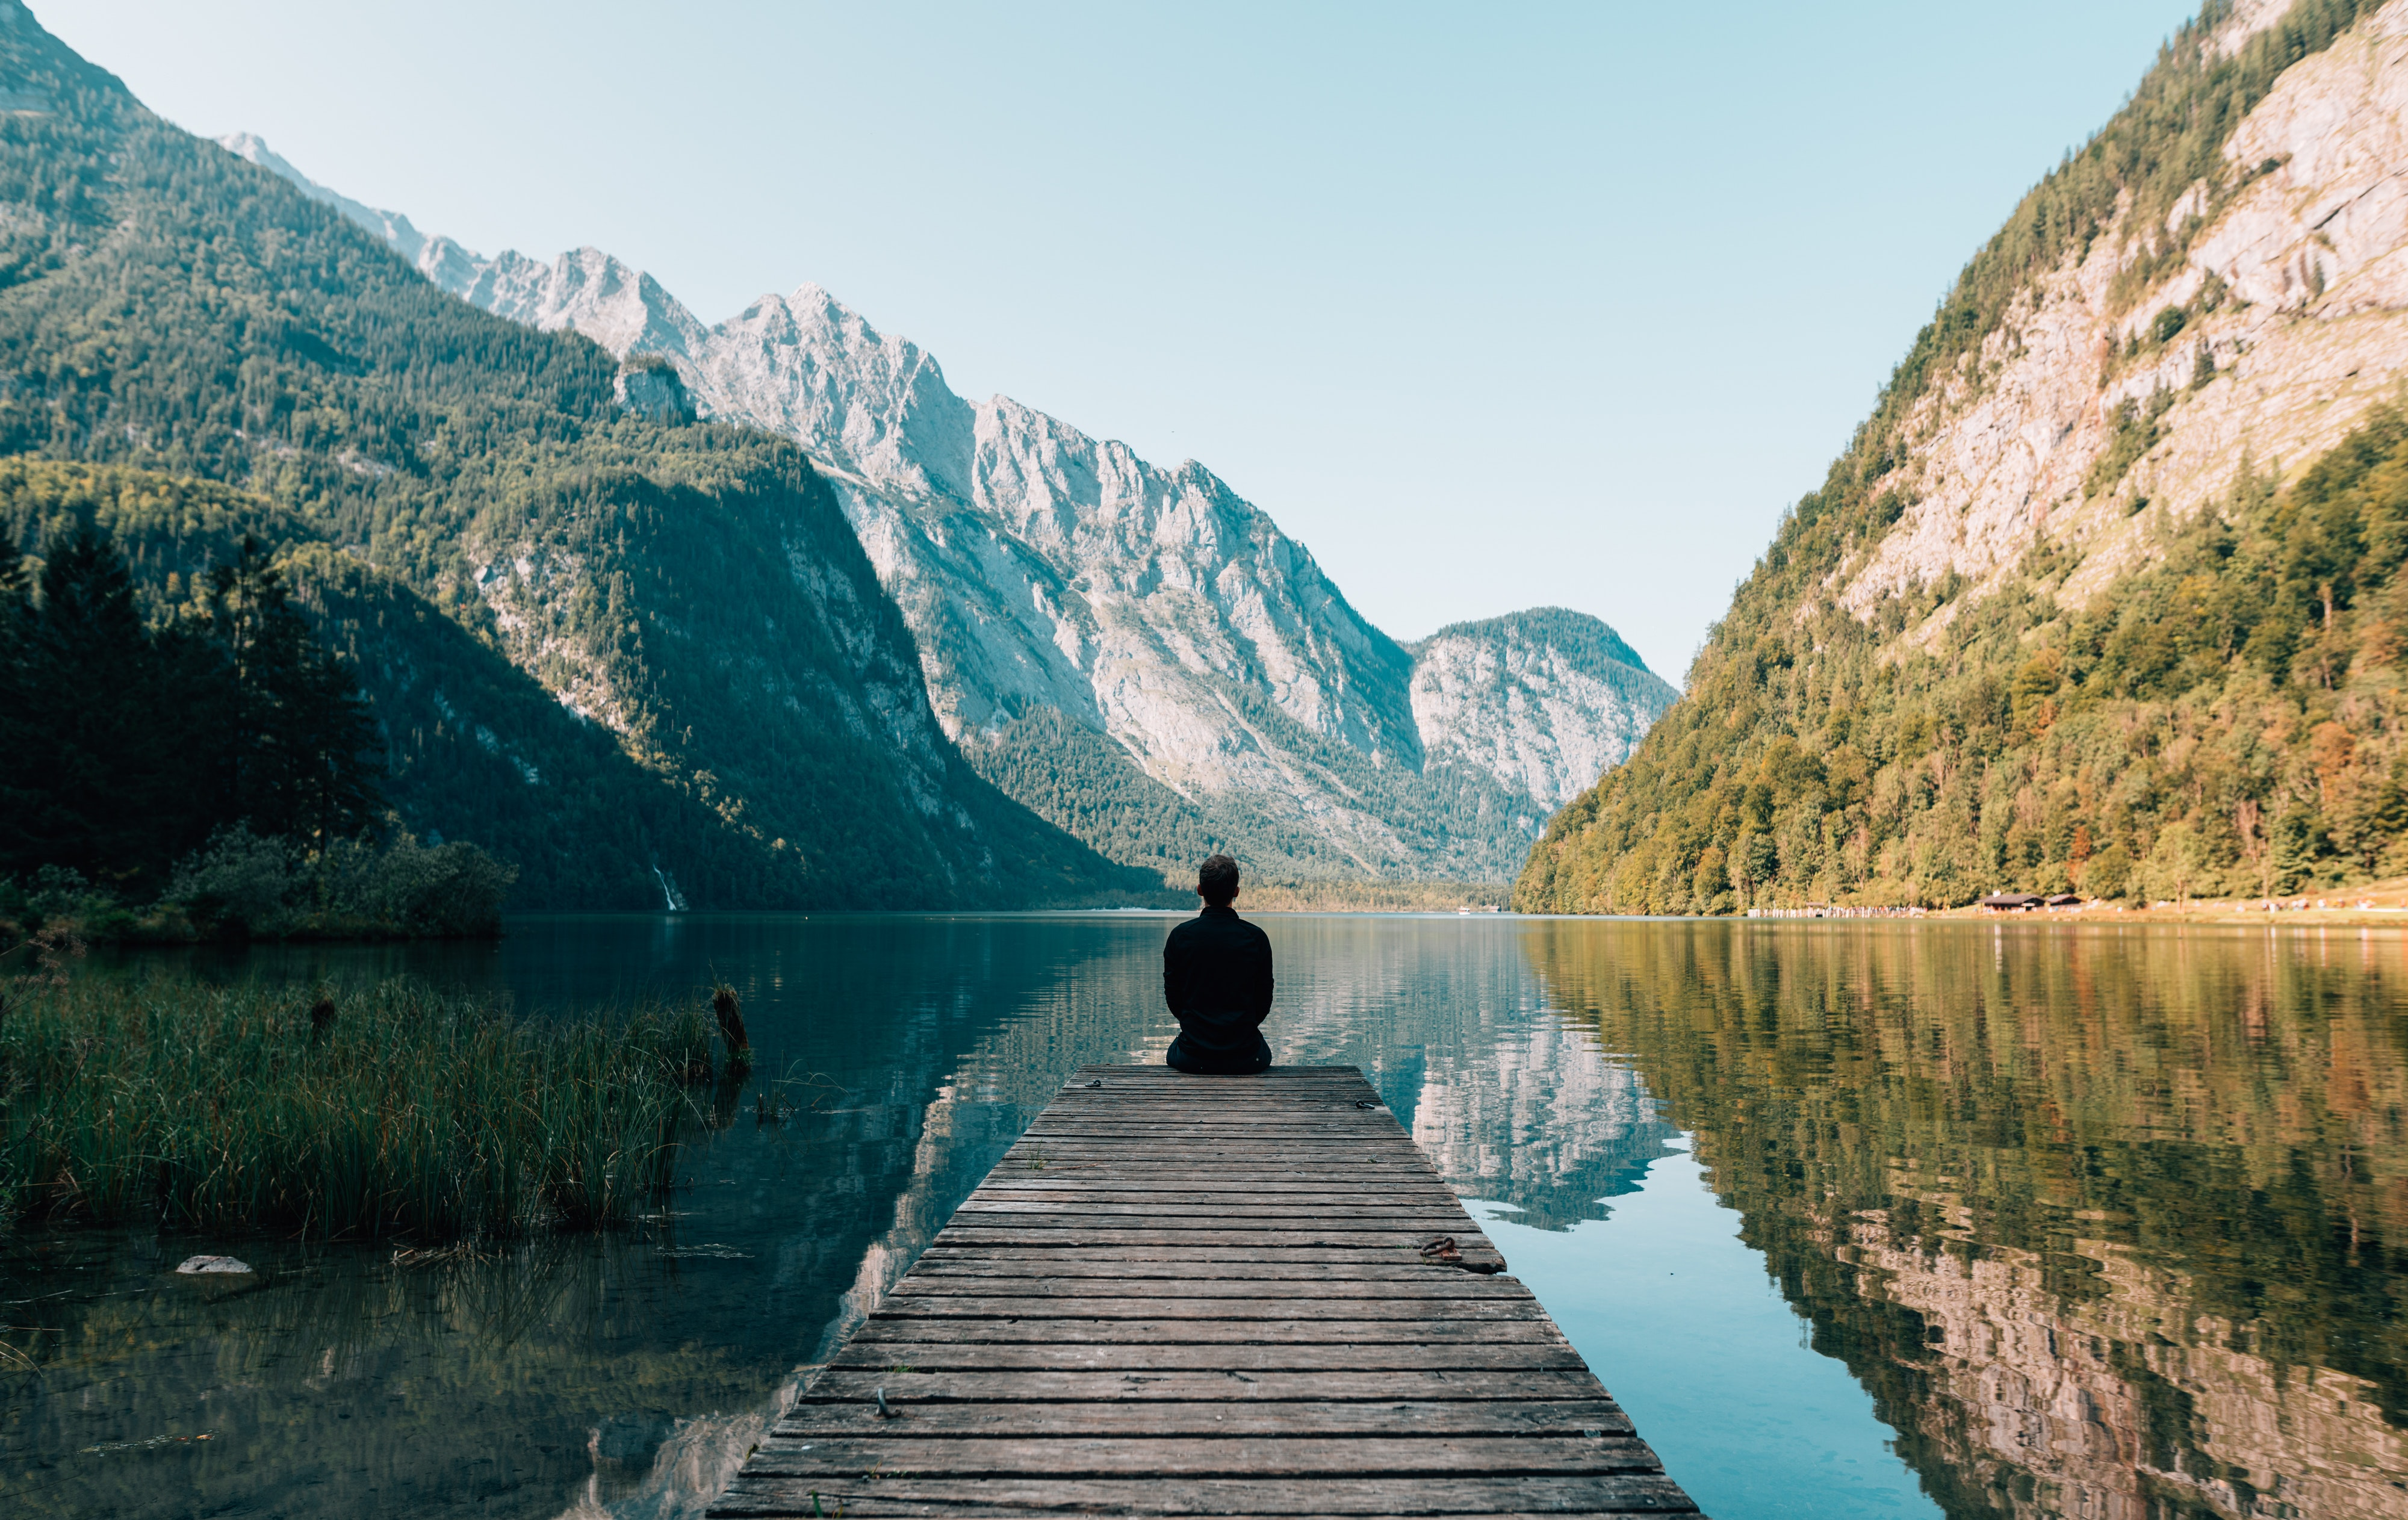 Person on a wooden bridge, surrounded by mountains